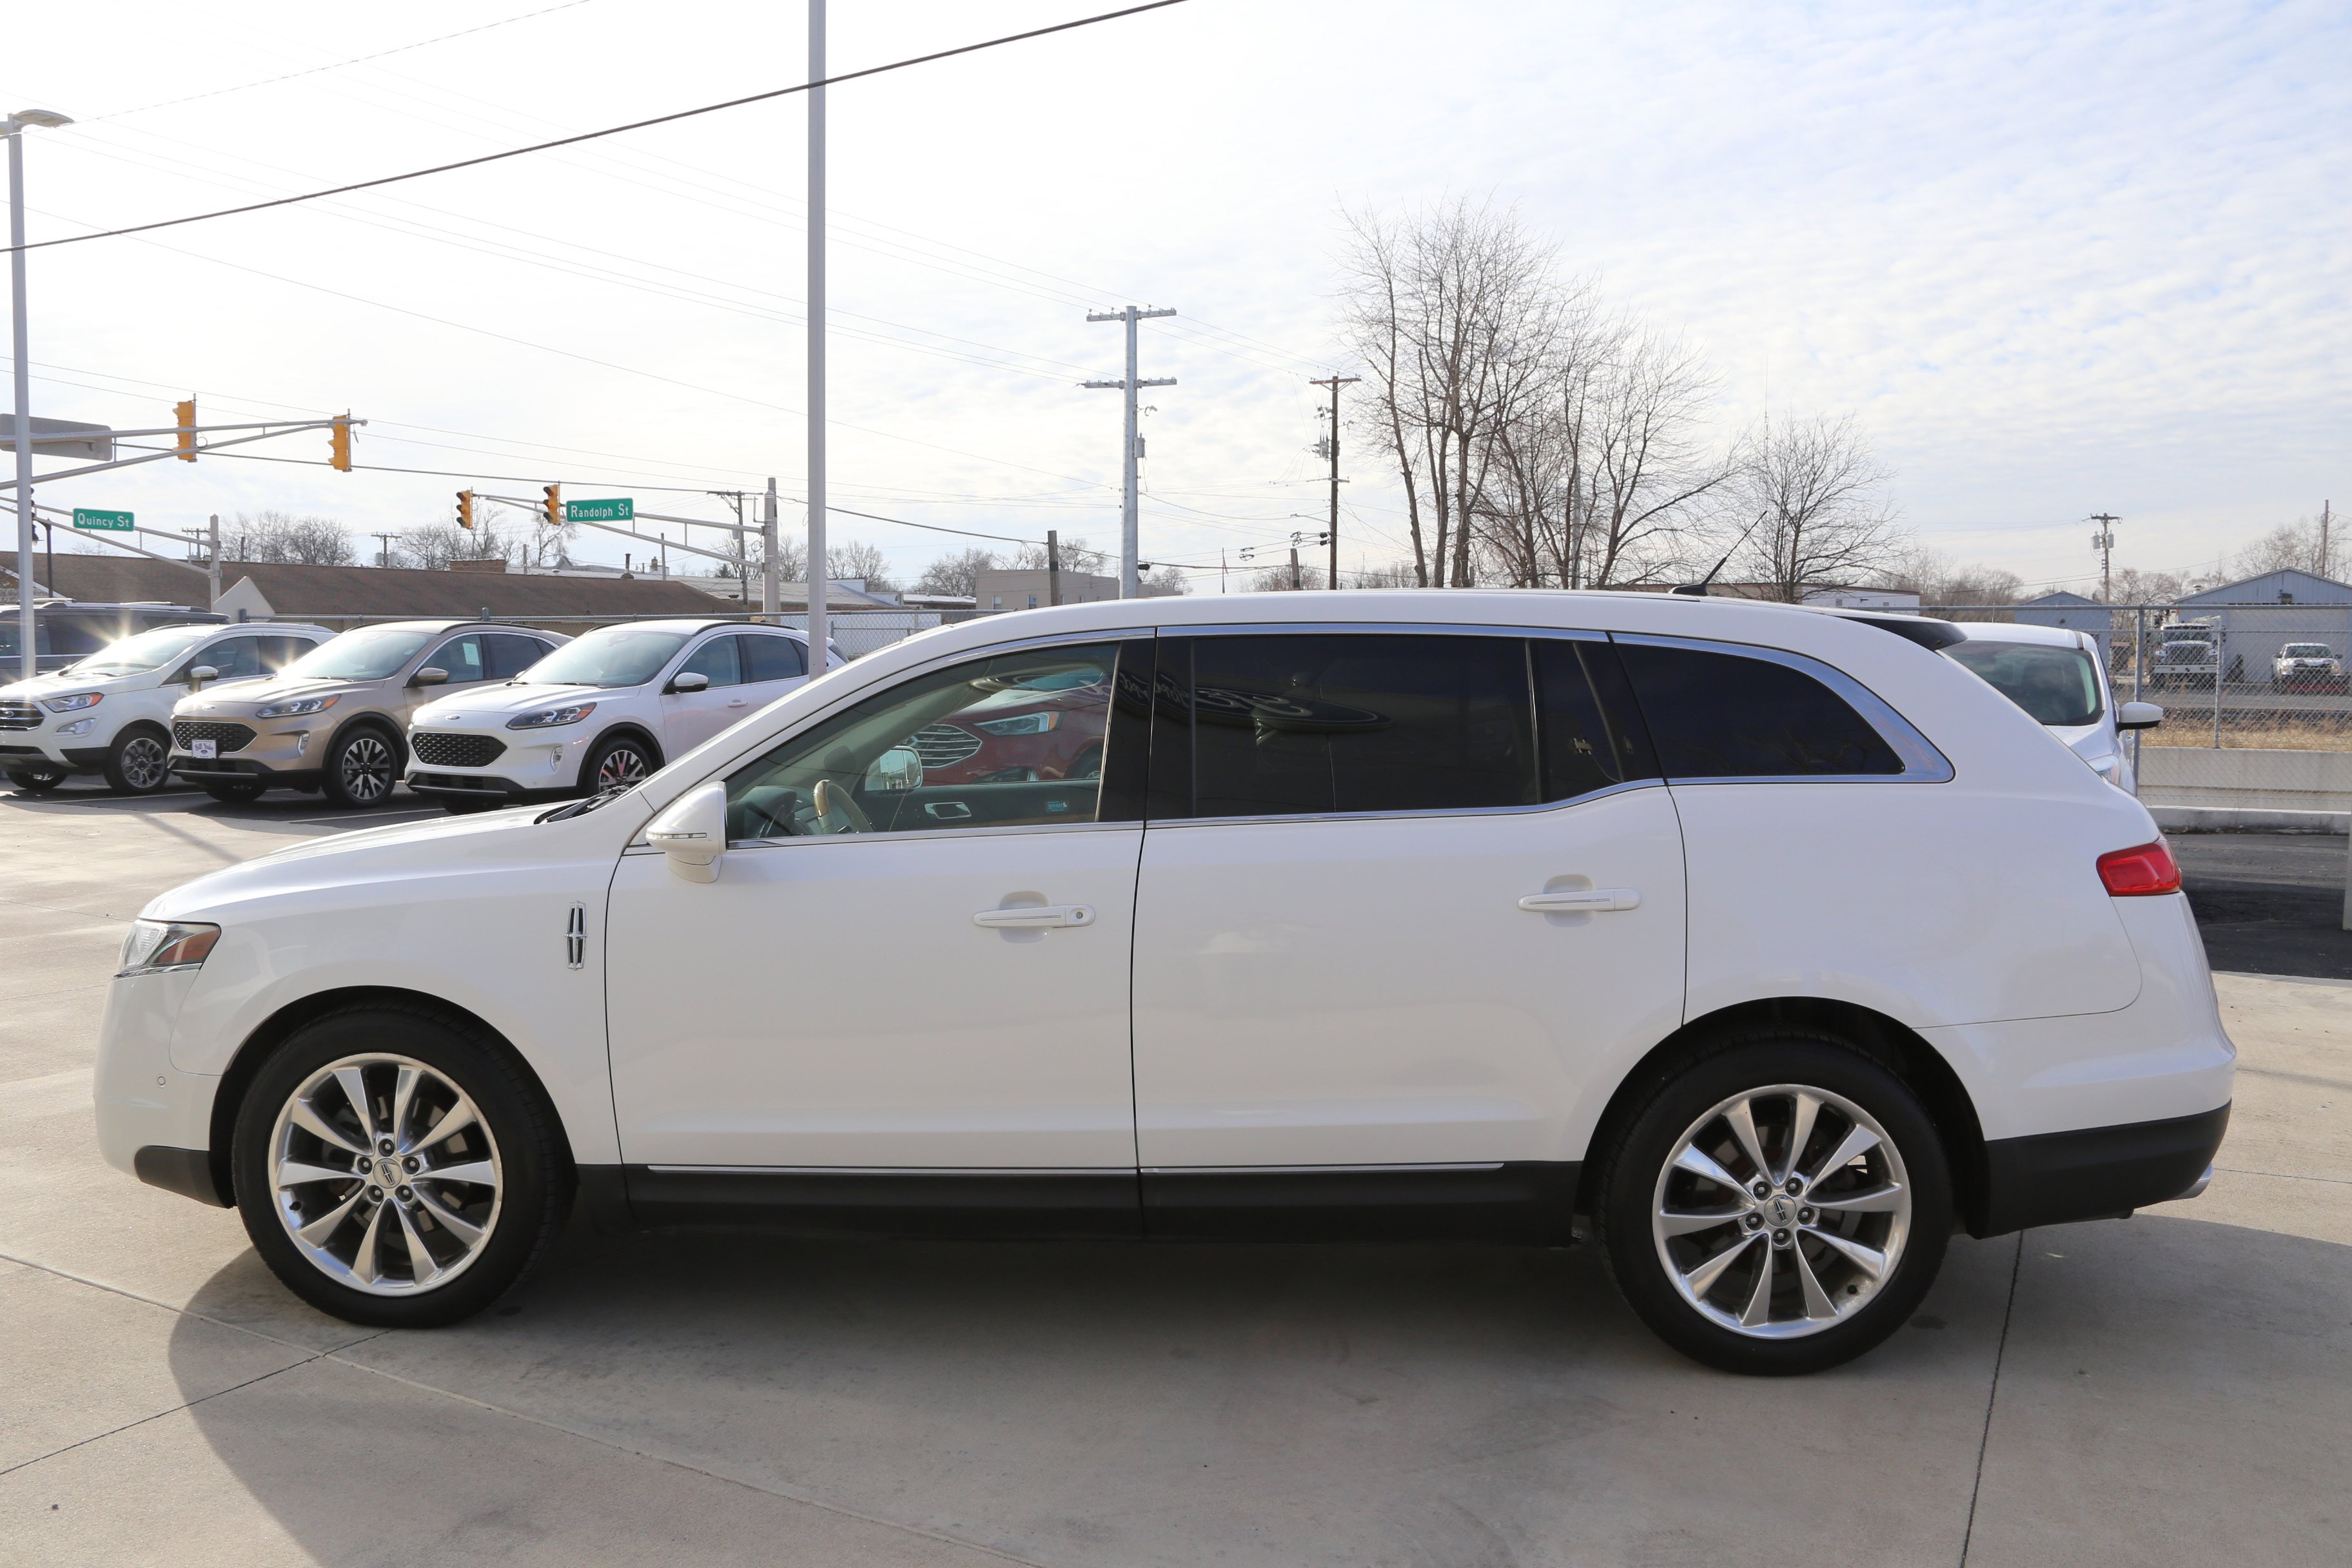 2010 Lincoln MKT AWD image